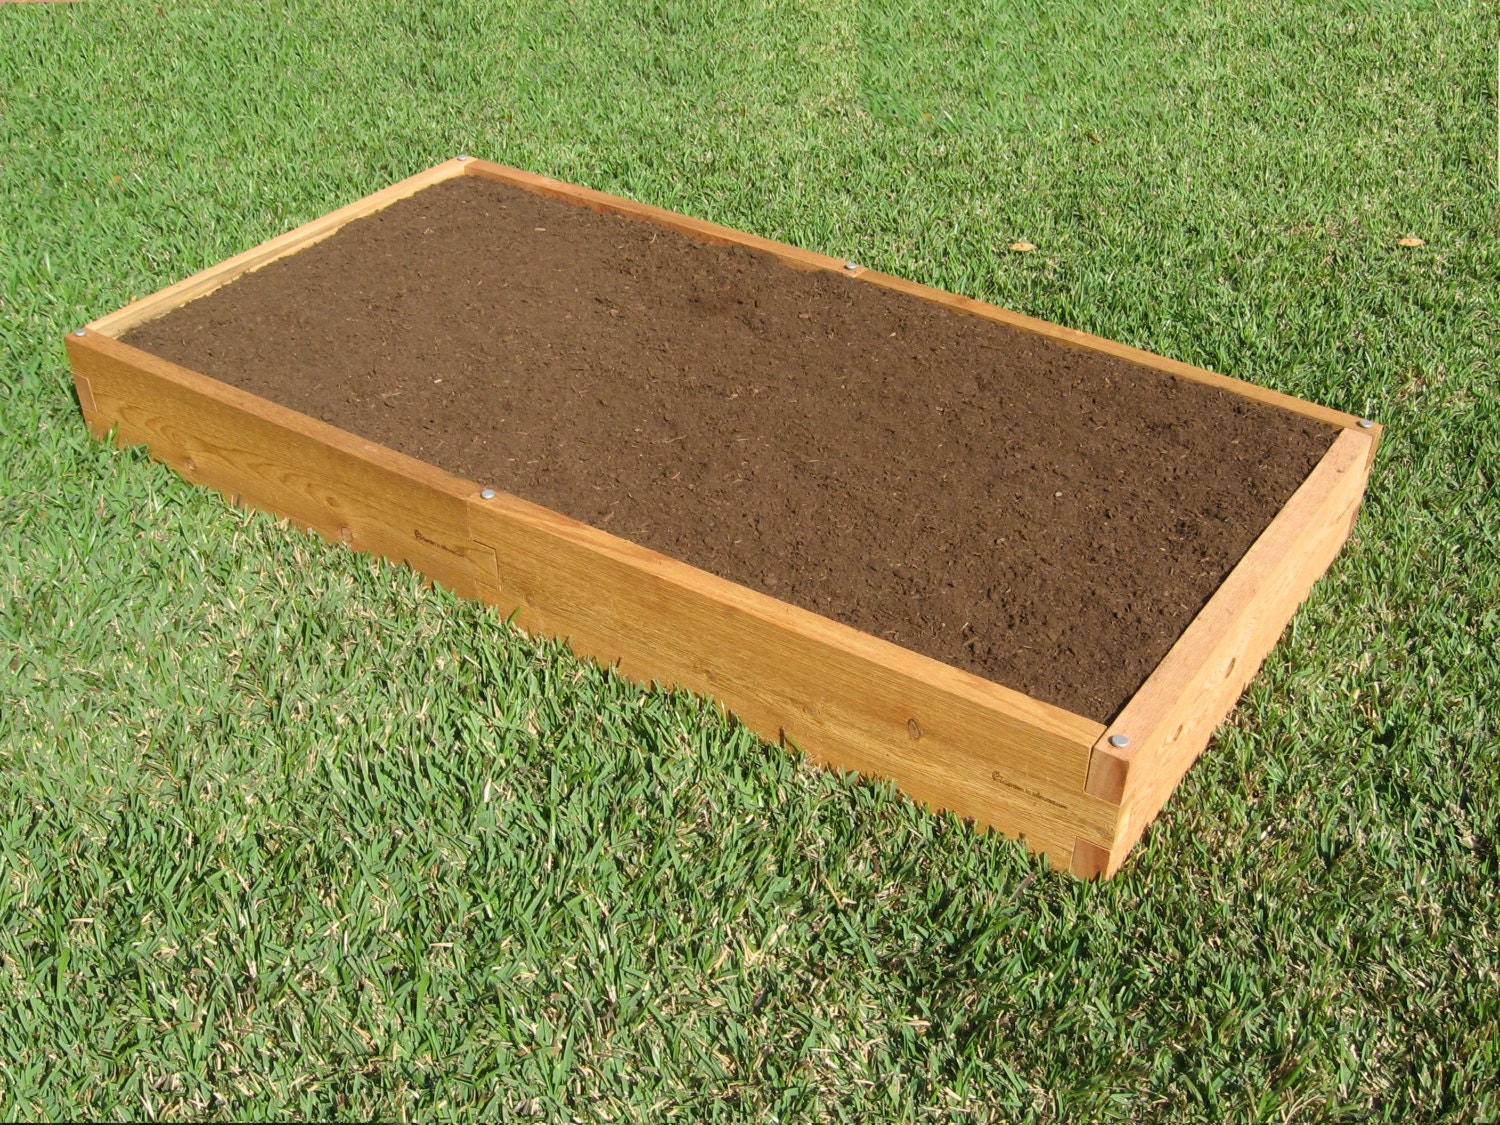 3x6 cedar raised garden bed Raised garden beds